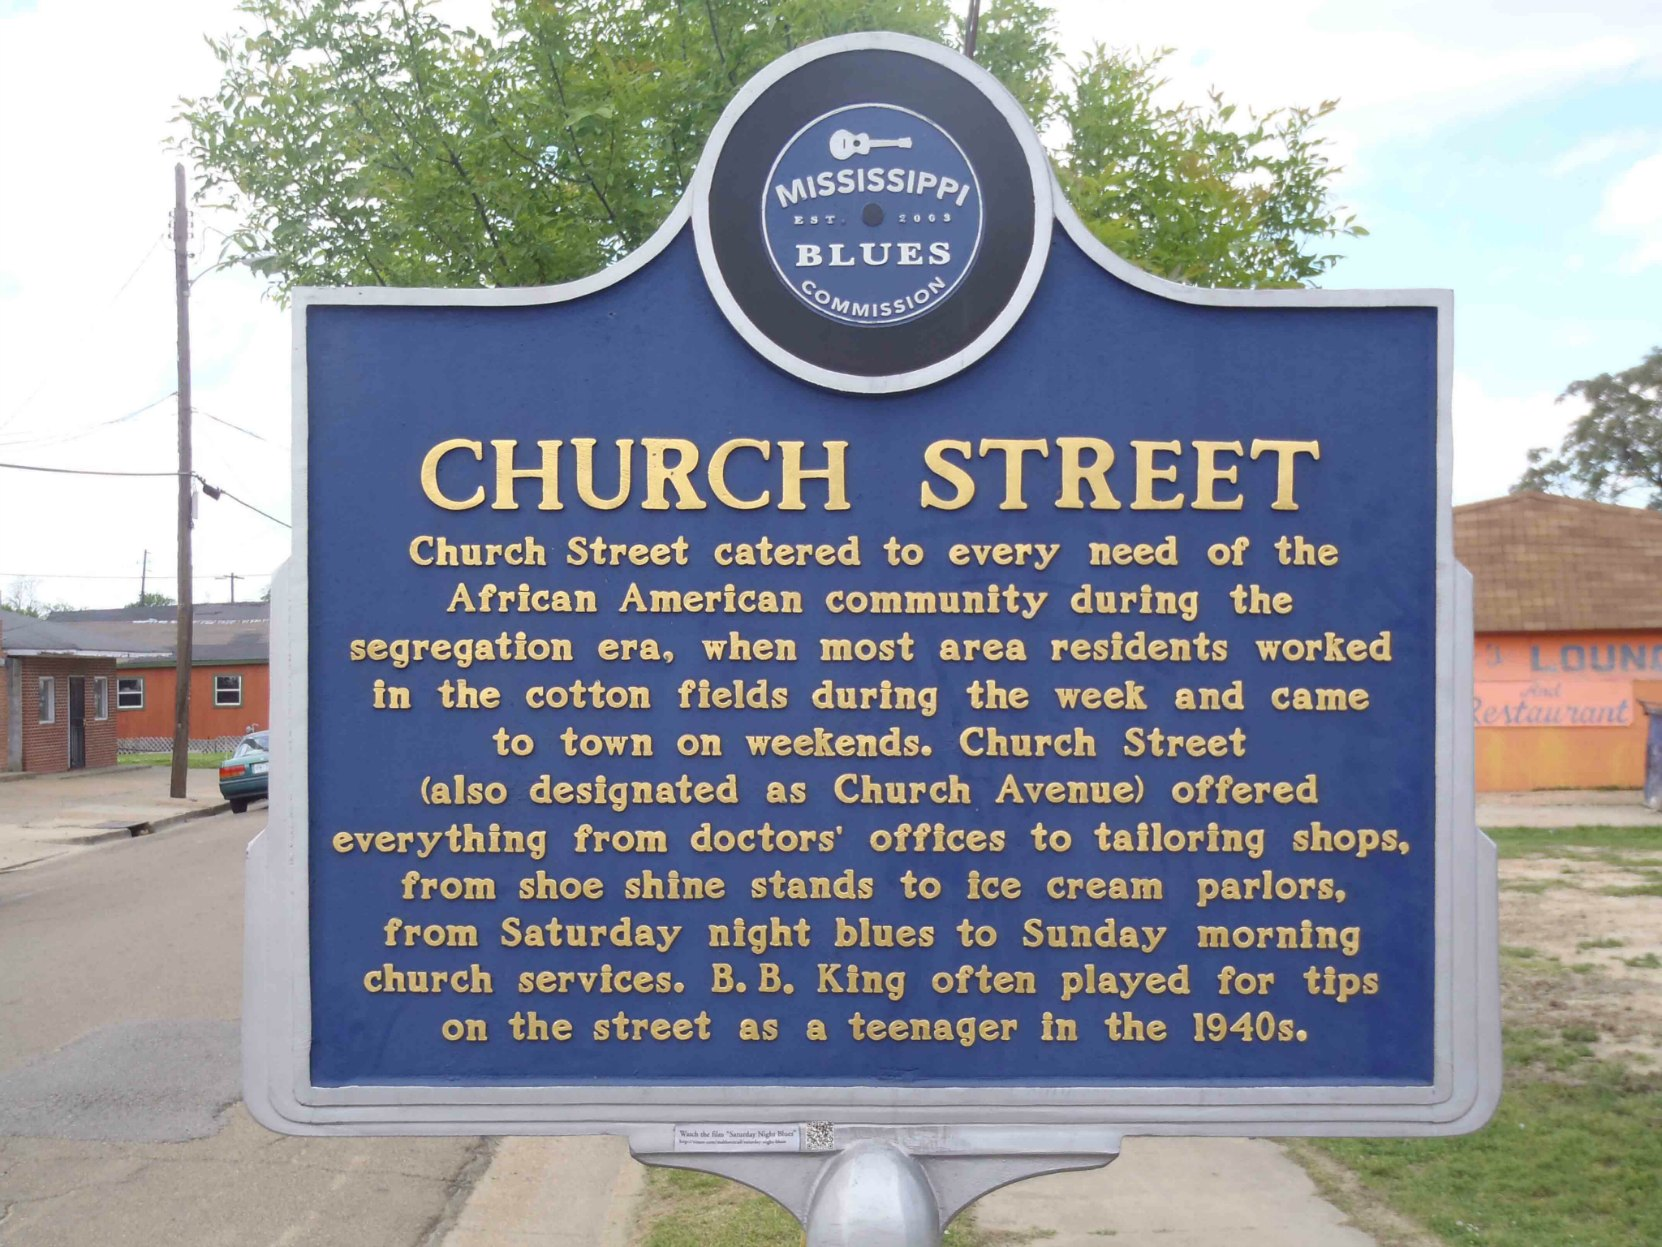 Mississippi Blues Trail marker commemorating Church Street, Indianola, Mississippi